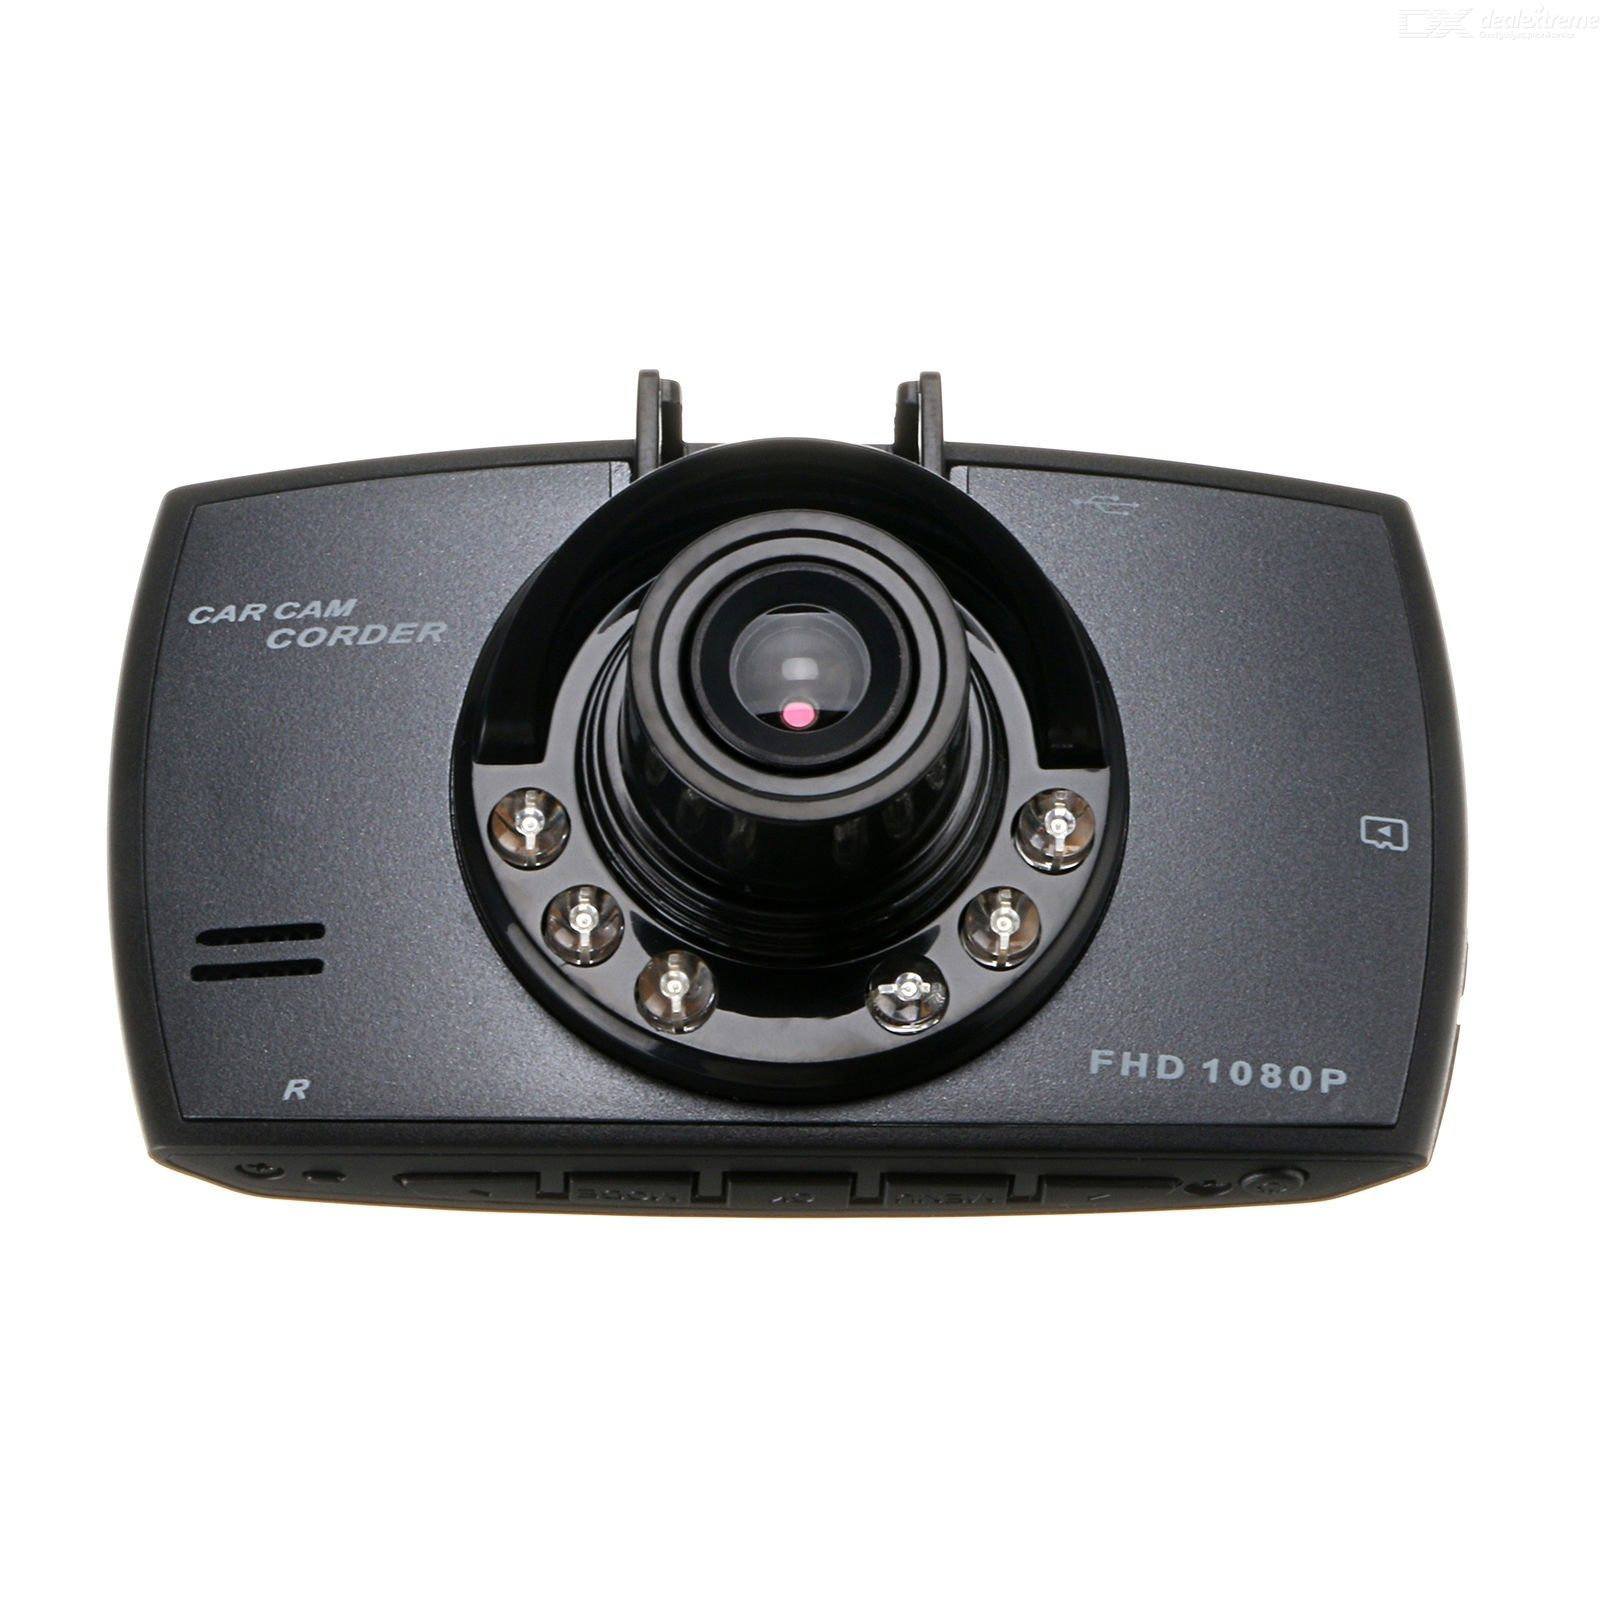 Car dvr camera, full hd 1080p 140 degree video cameras, car dash cameras, night vision, g sensor, dash cam